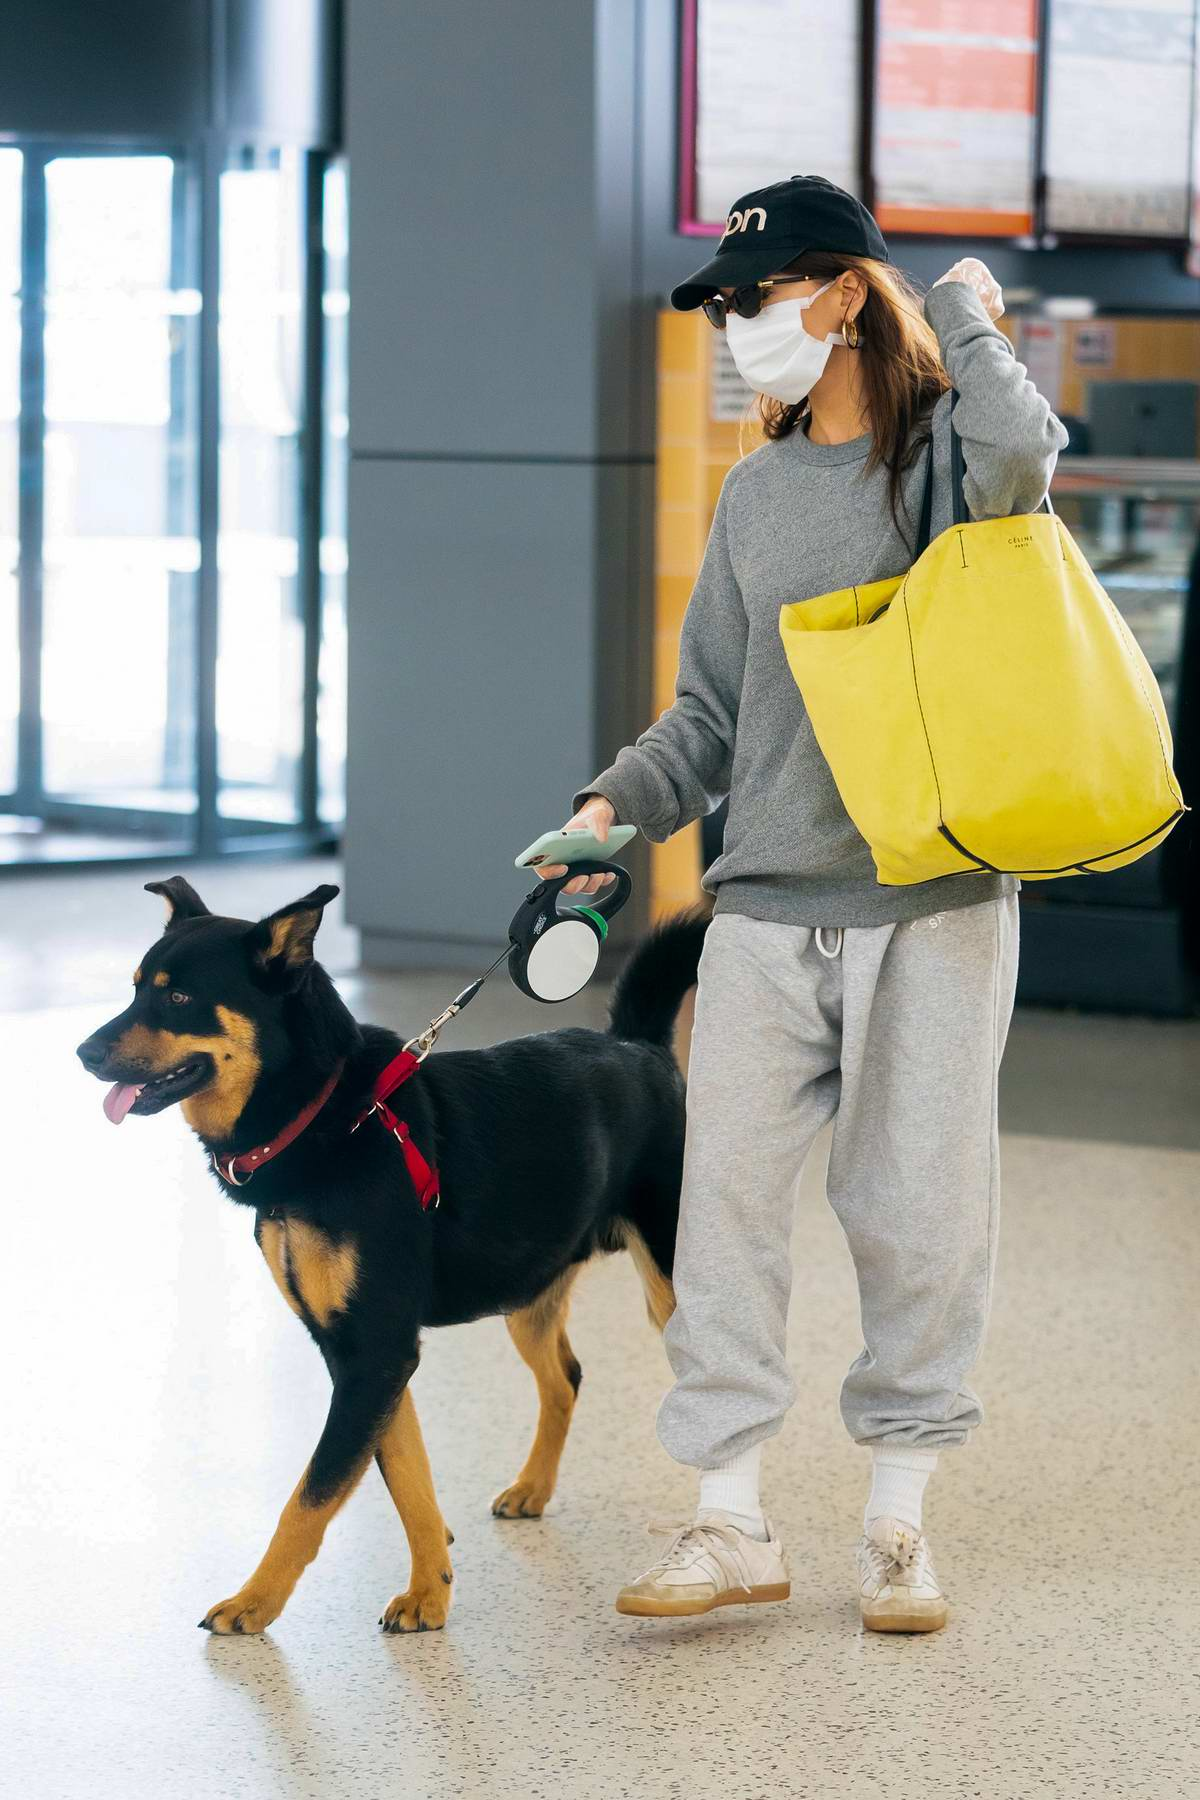 Emily Ratajkowski and Sebastian Bear-McClard arrive with their dog for a flight out of JFK Airport in New York City